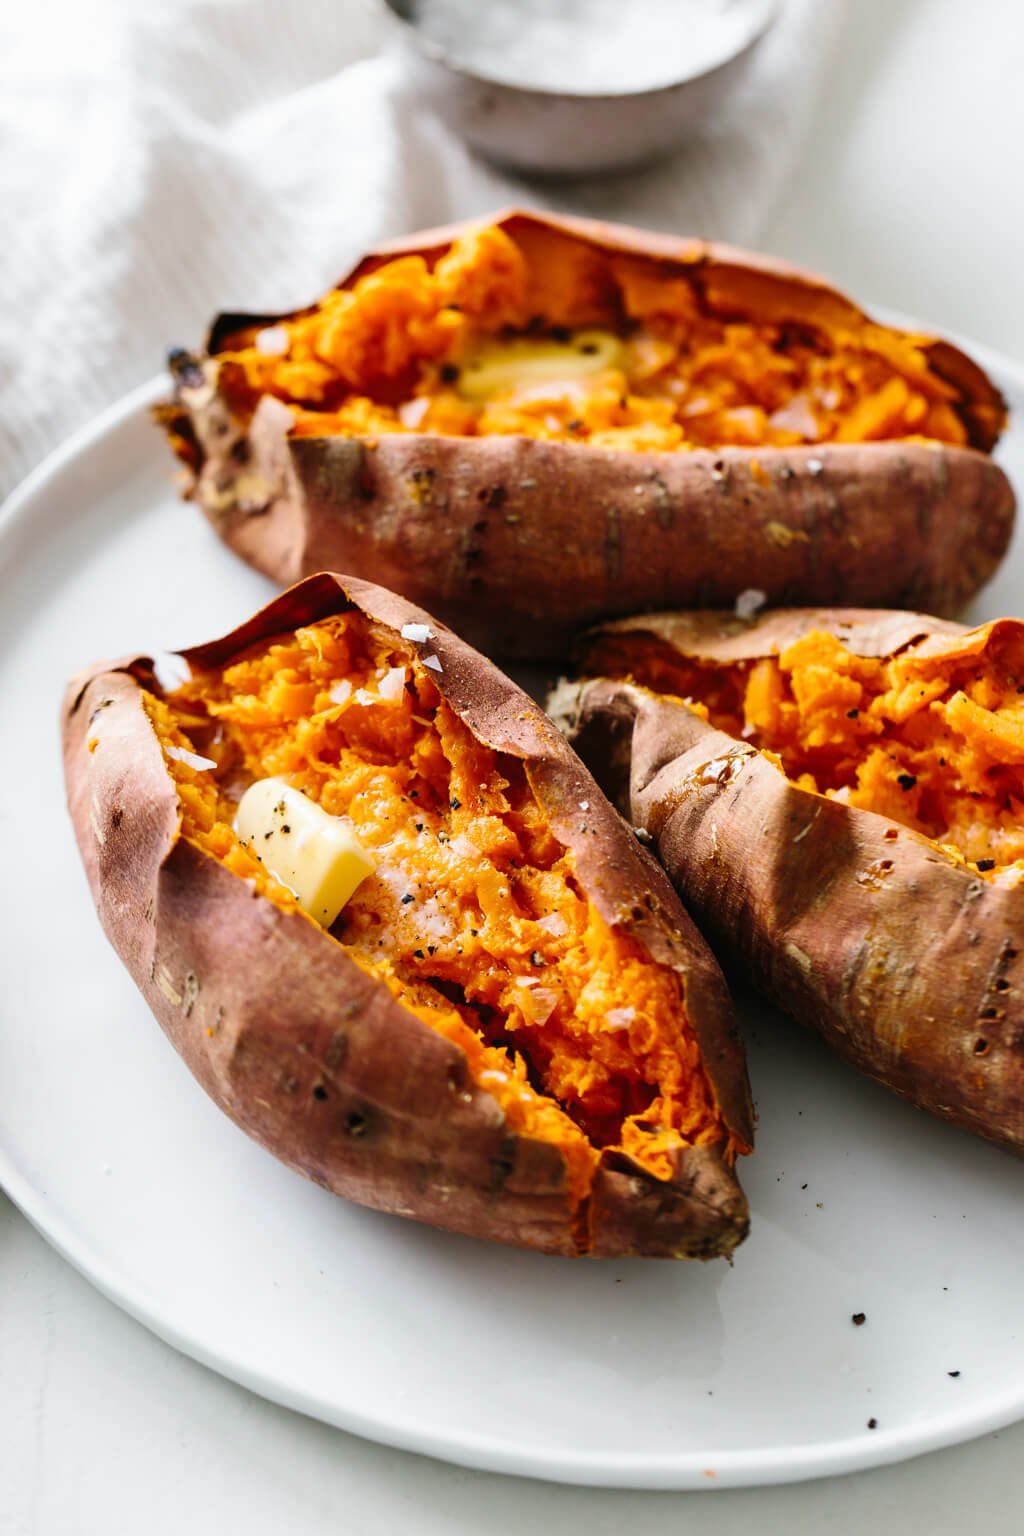 Baked Sweet Potato: How to Bake Sweet Potatoes Perfectly ...